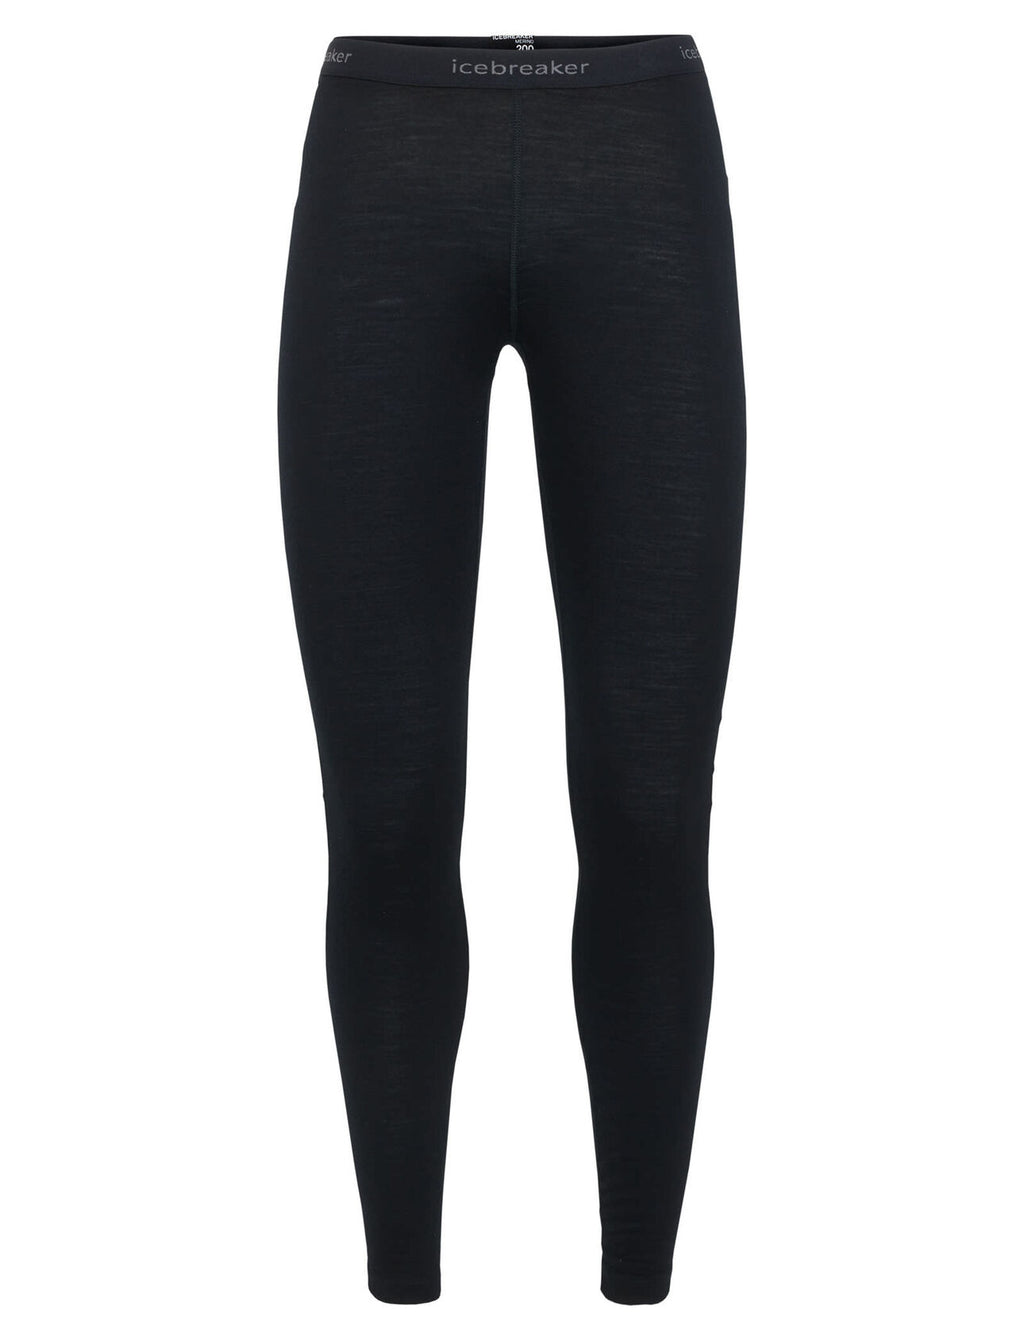 Women's Merino 200 Oasis Thermal Leggings